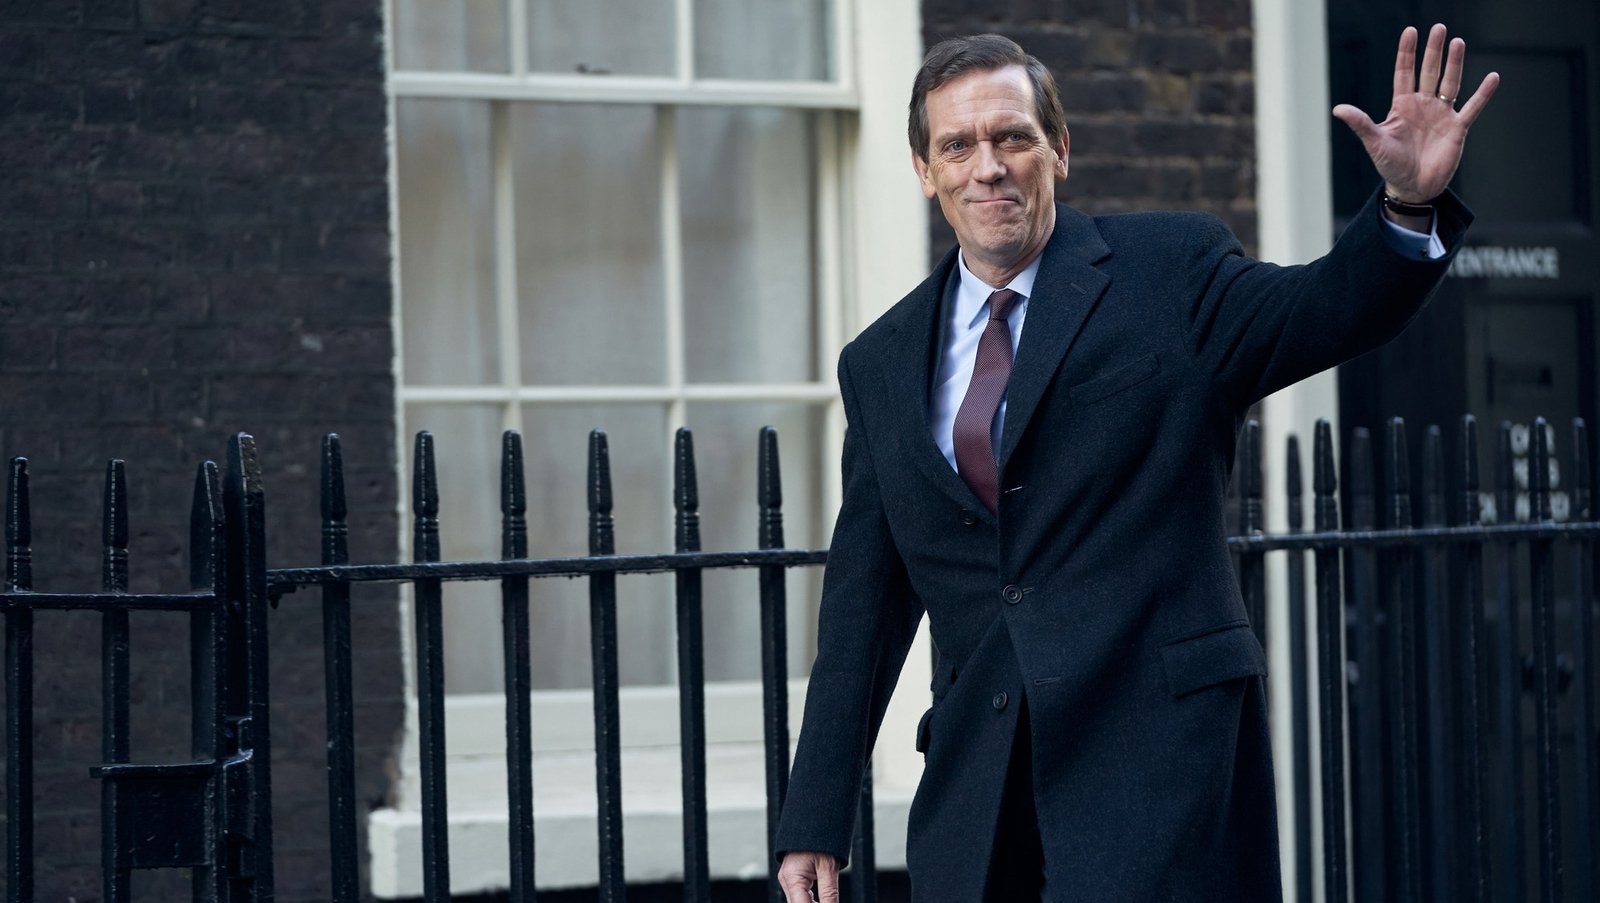 BBC teases new political thriller starring Hugh Laurie